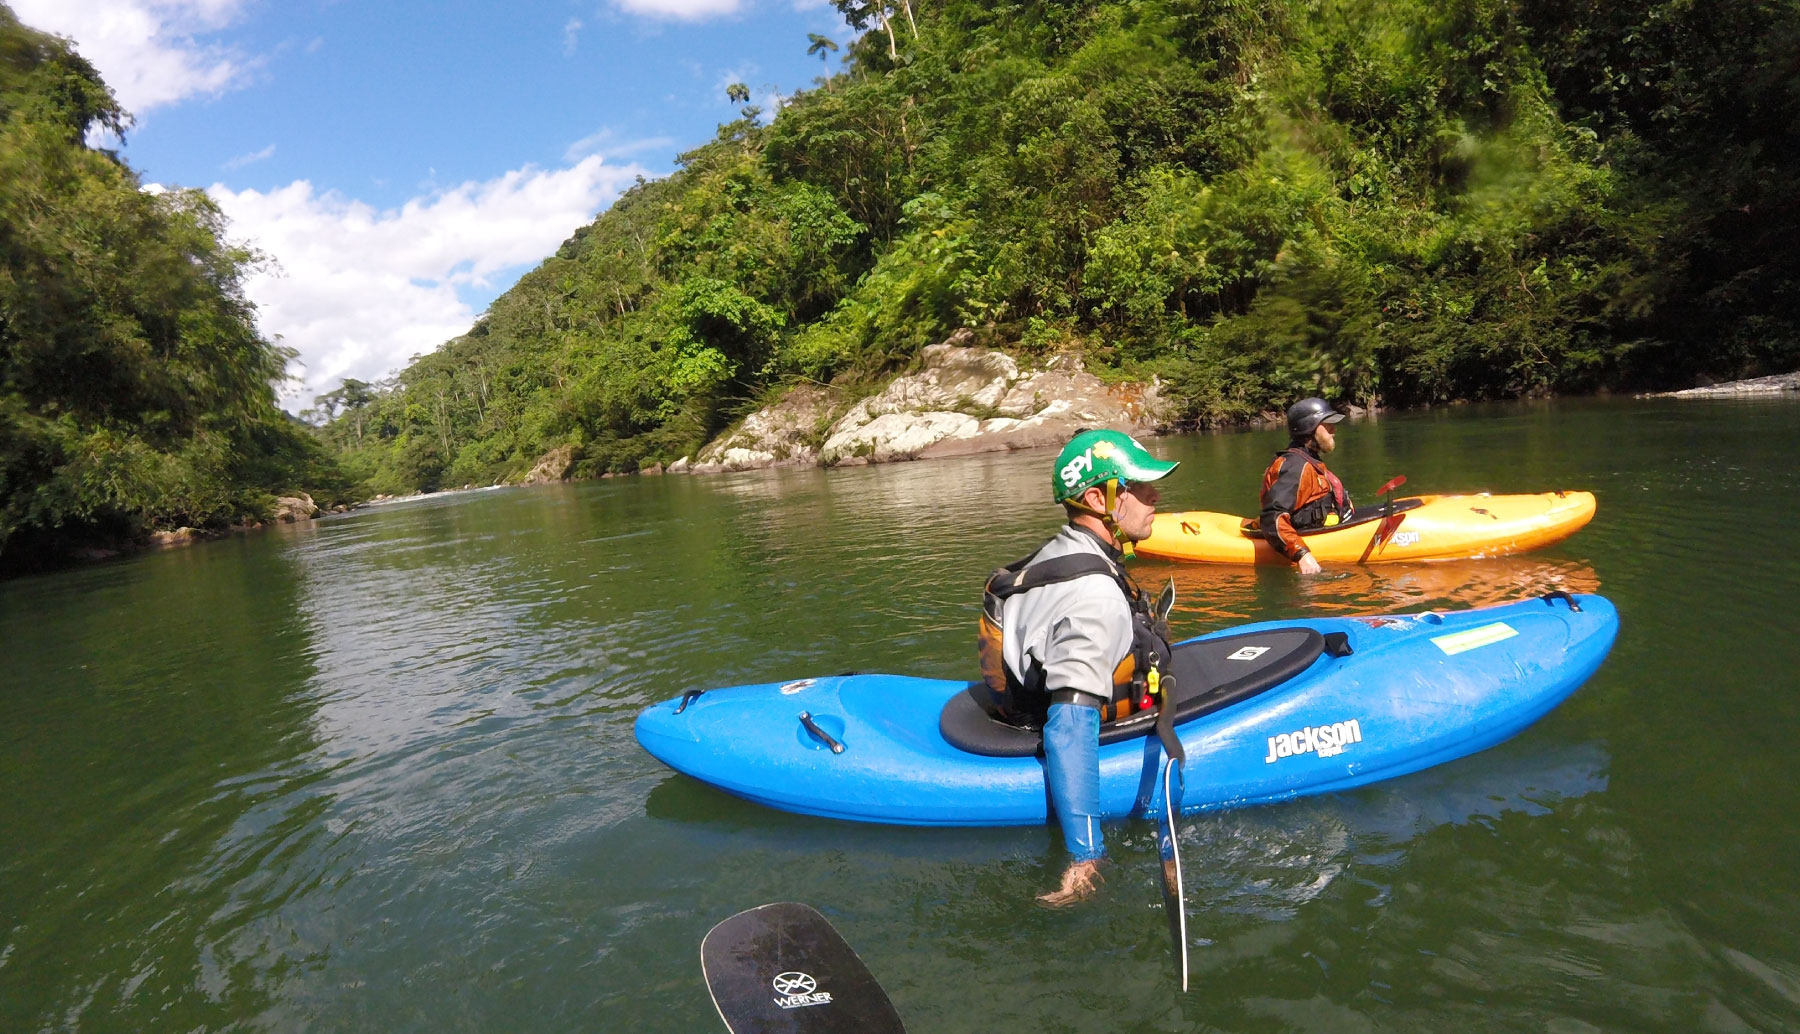 Sunny day in the rivers, with two kayakers